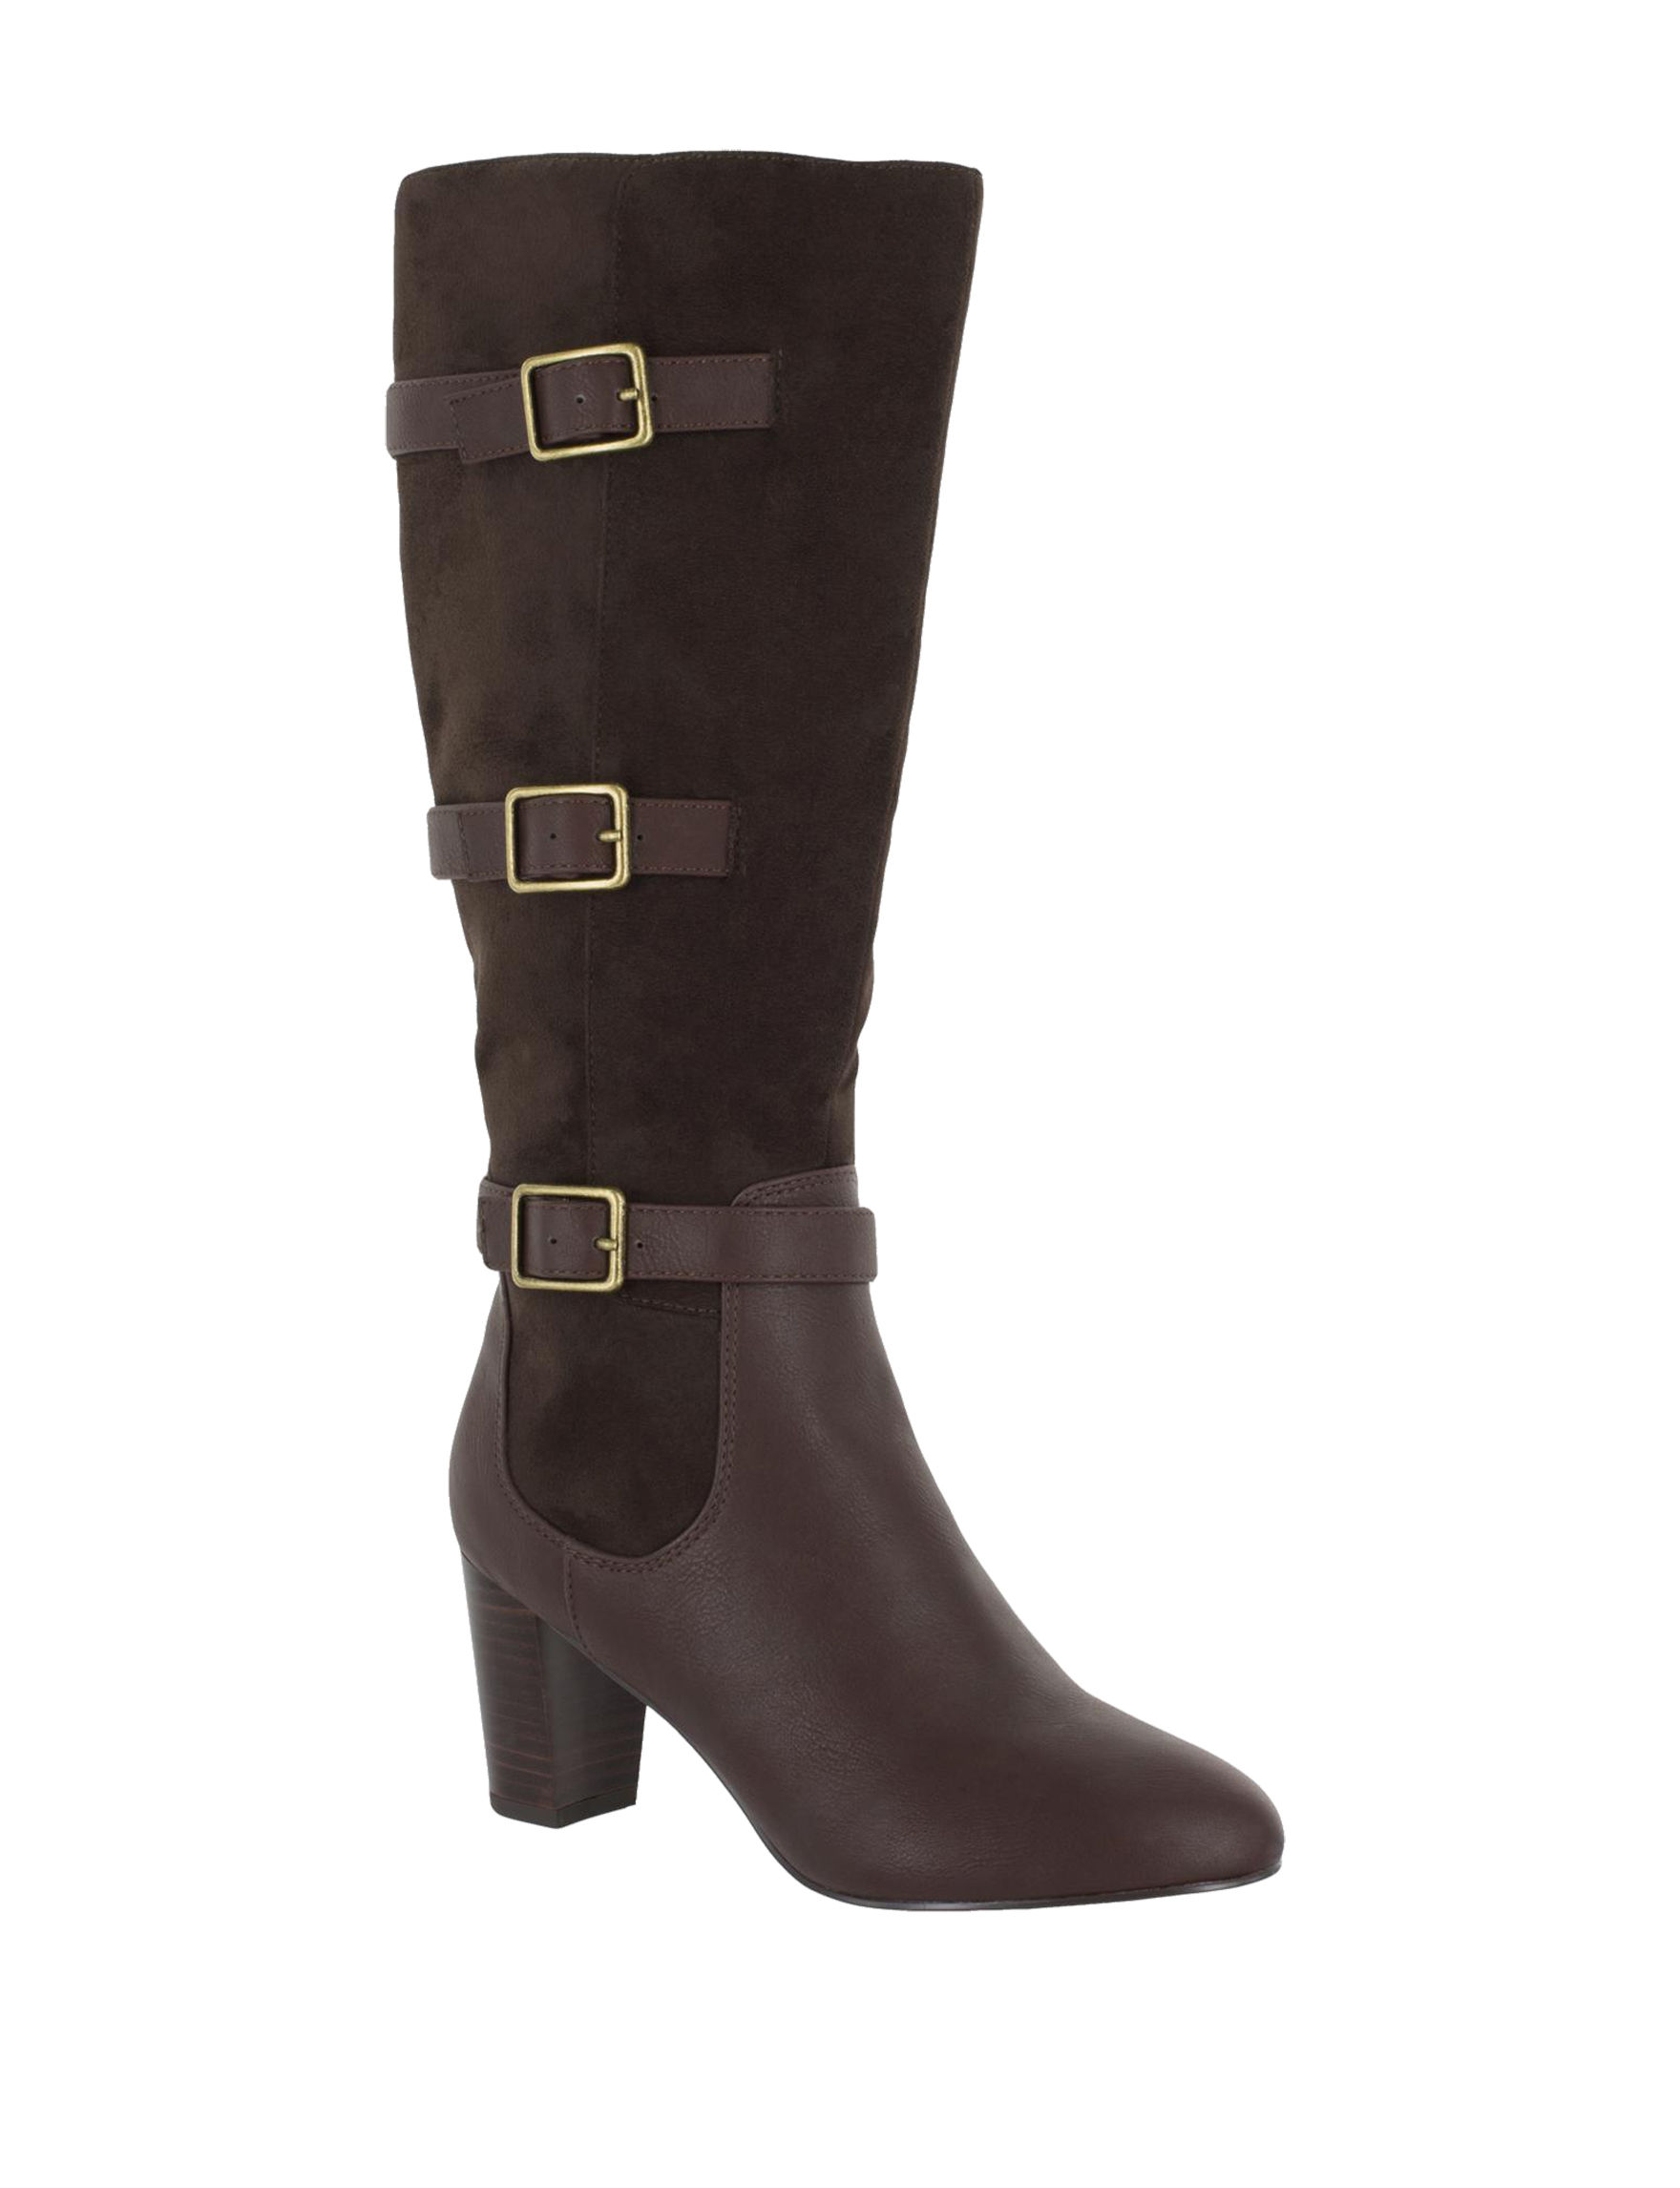 Bella Vita Brown Riding Boots Wide Calf